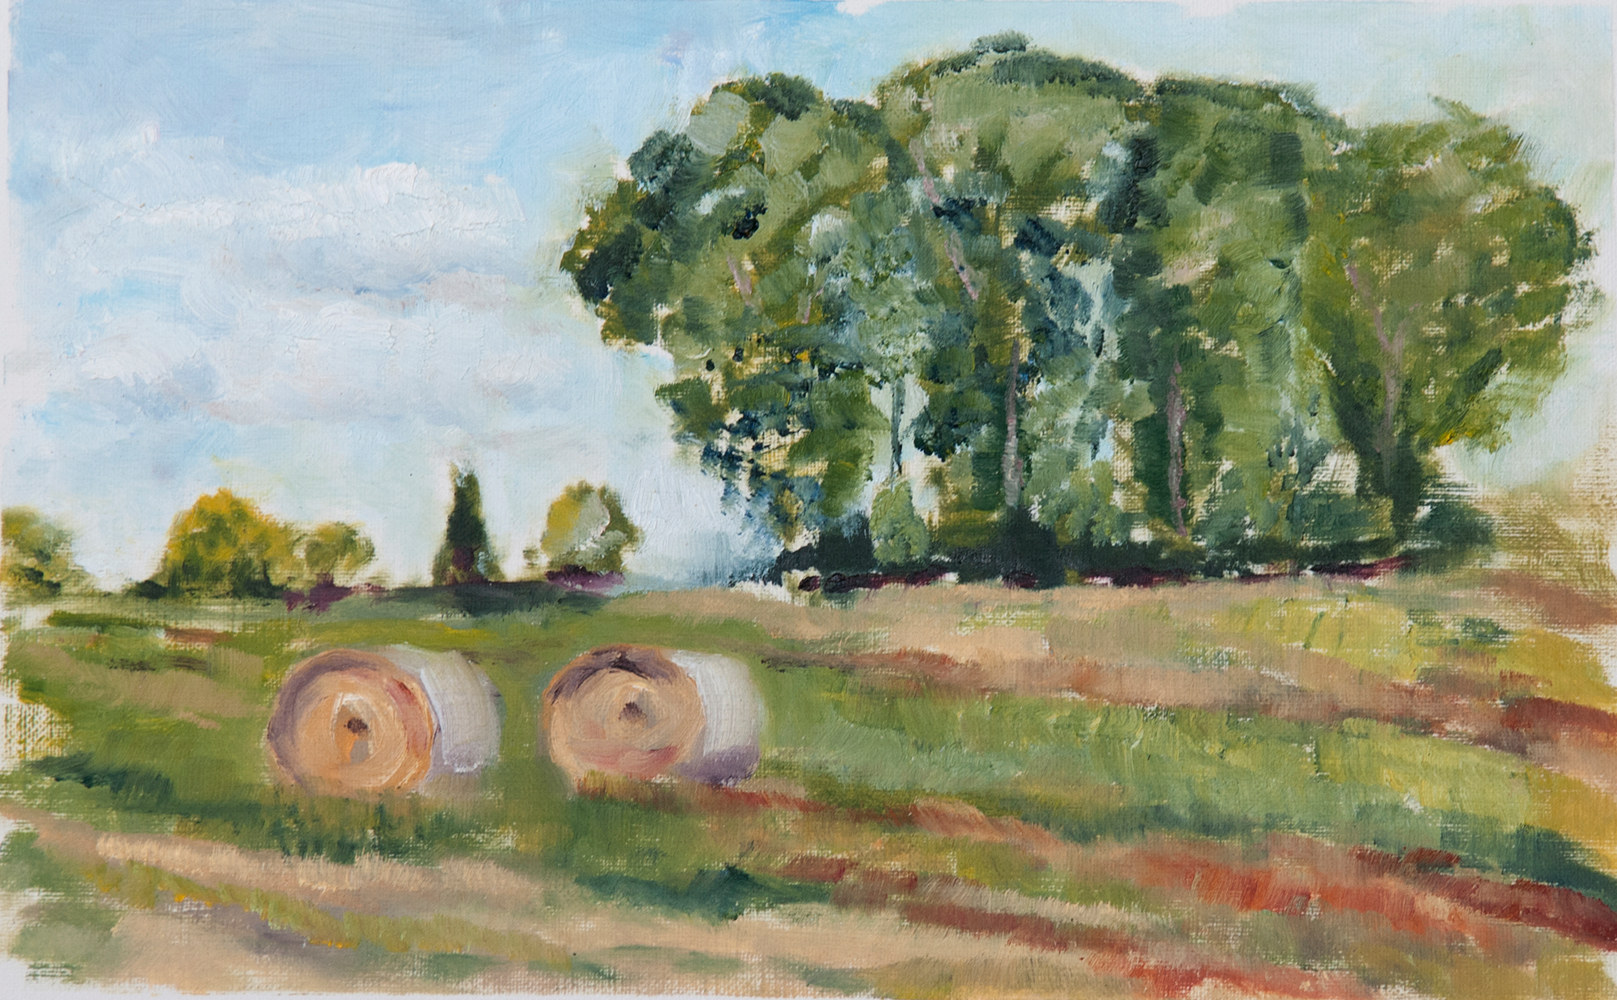 Oil painting LaFratta Bales by Kathleen Gross